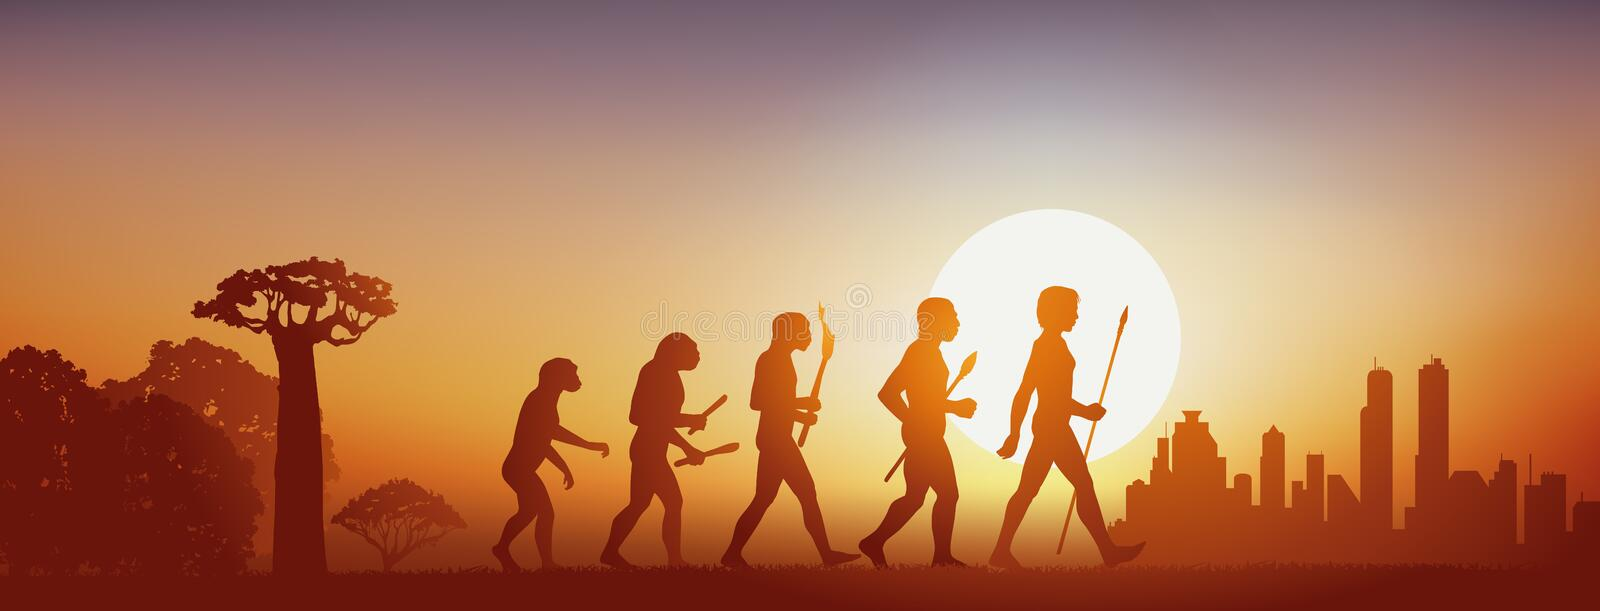 Concept of the evolution of humanity that goes from the forest to civilization. royalty free illustration